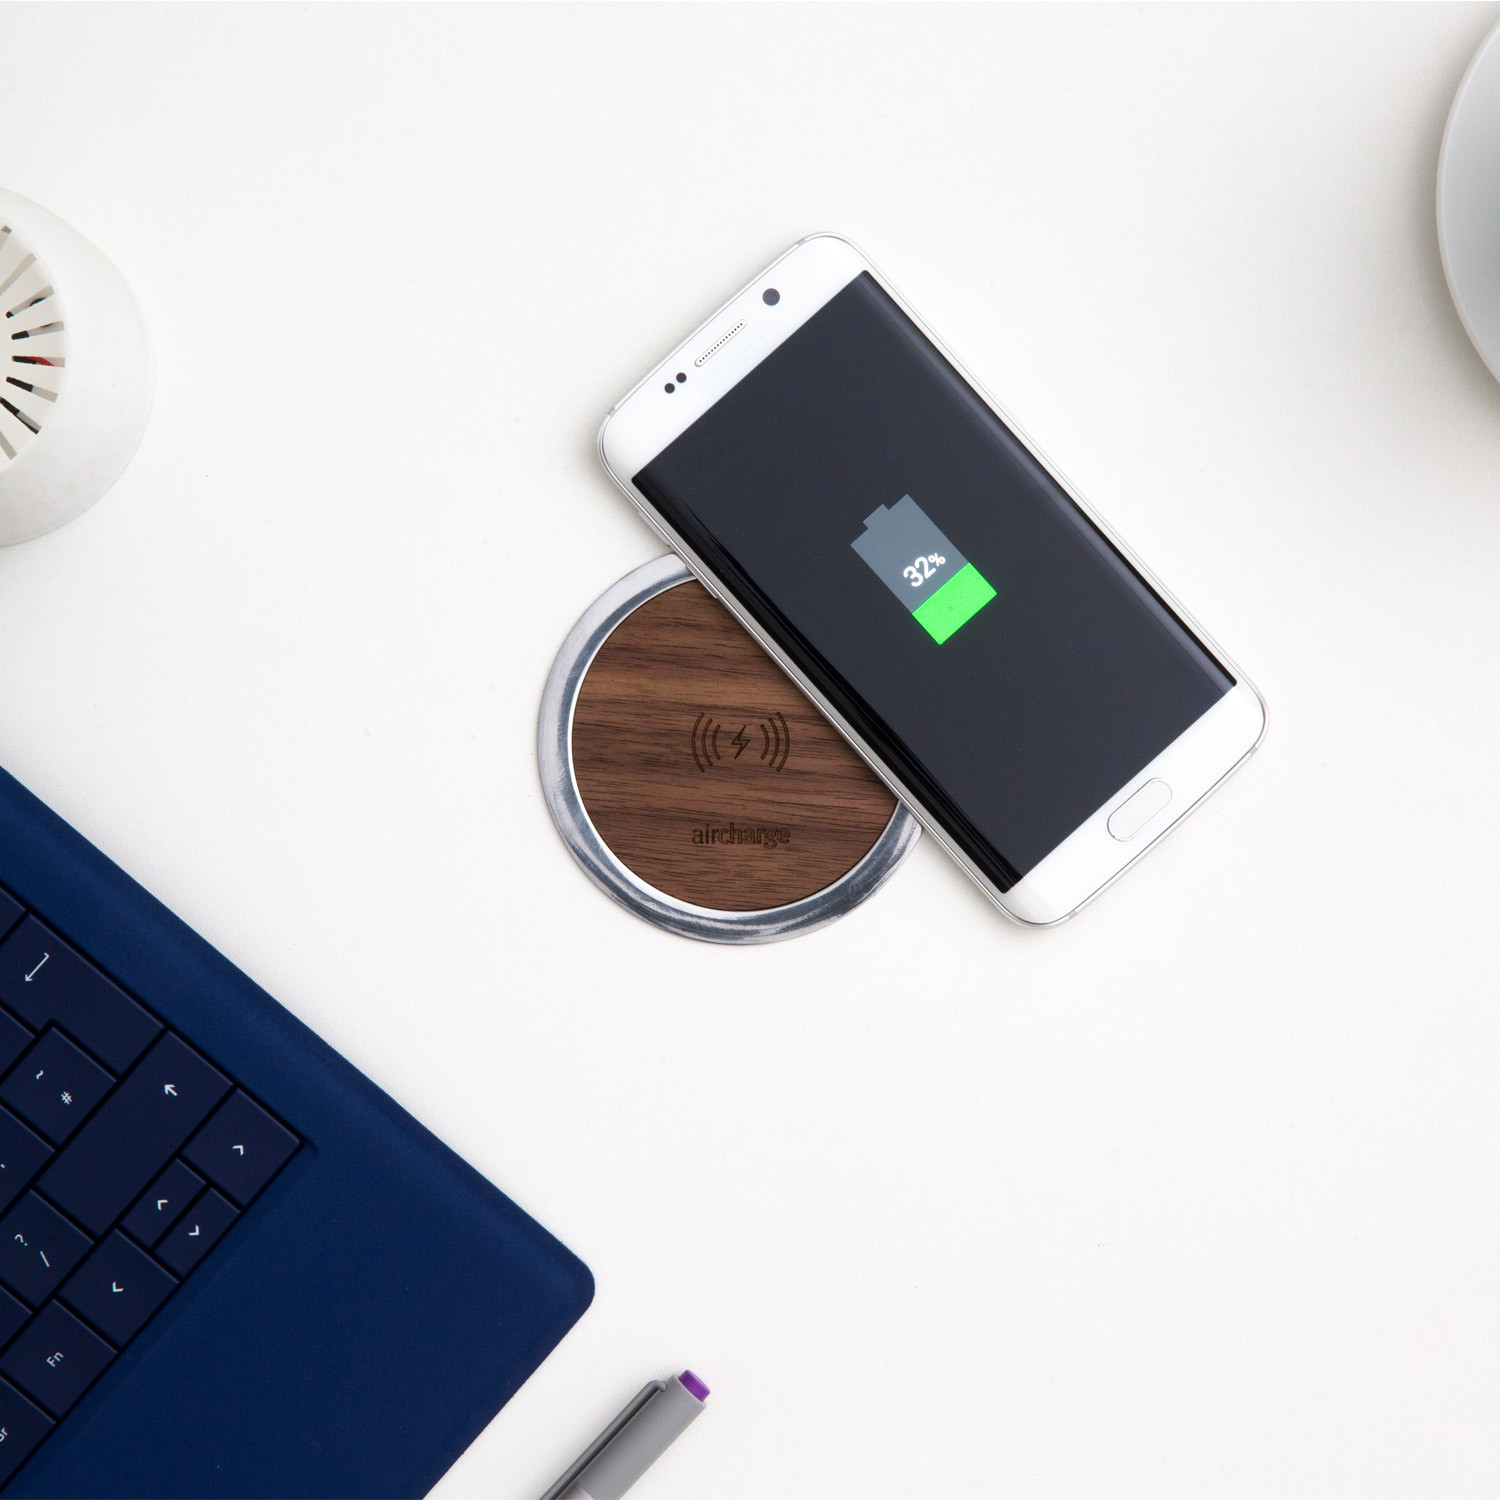 Aircharge Wireless Phone Charger